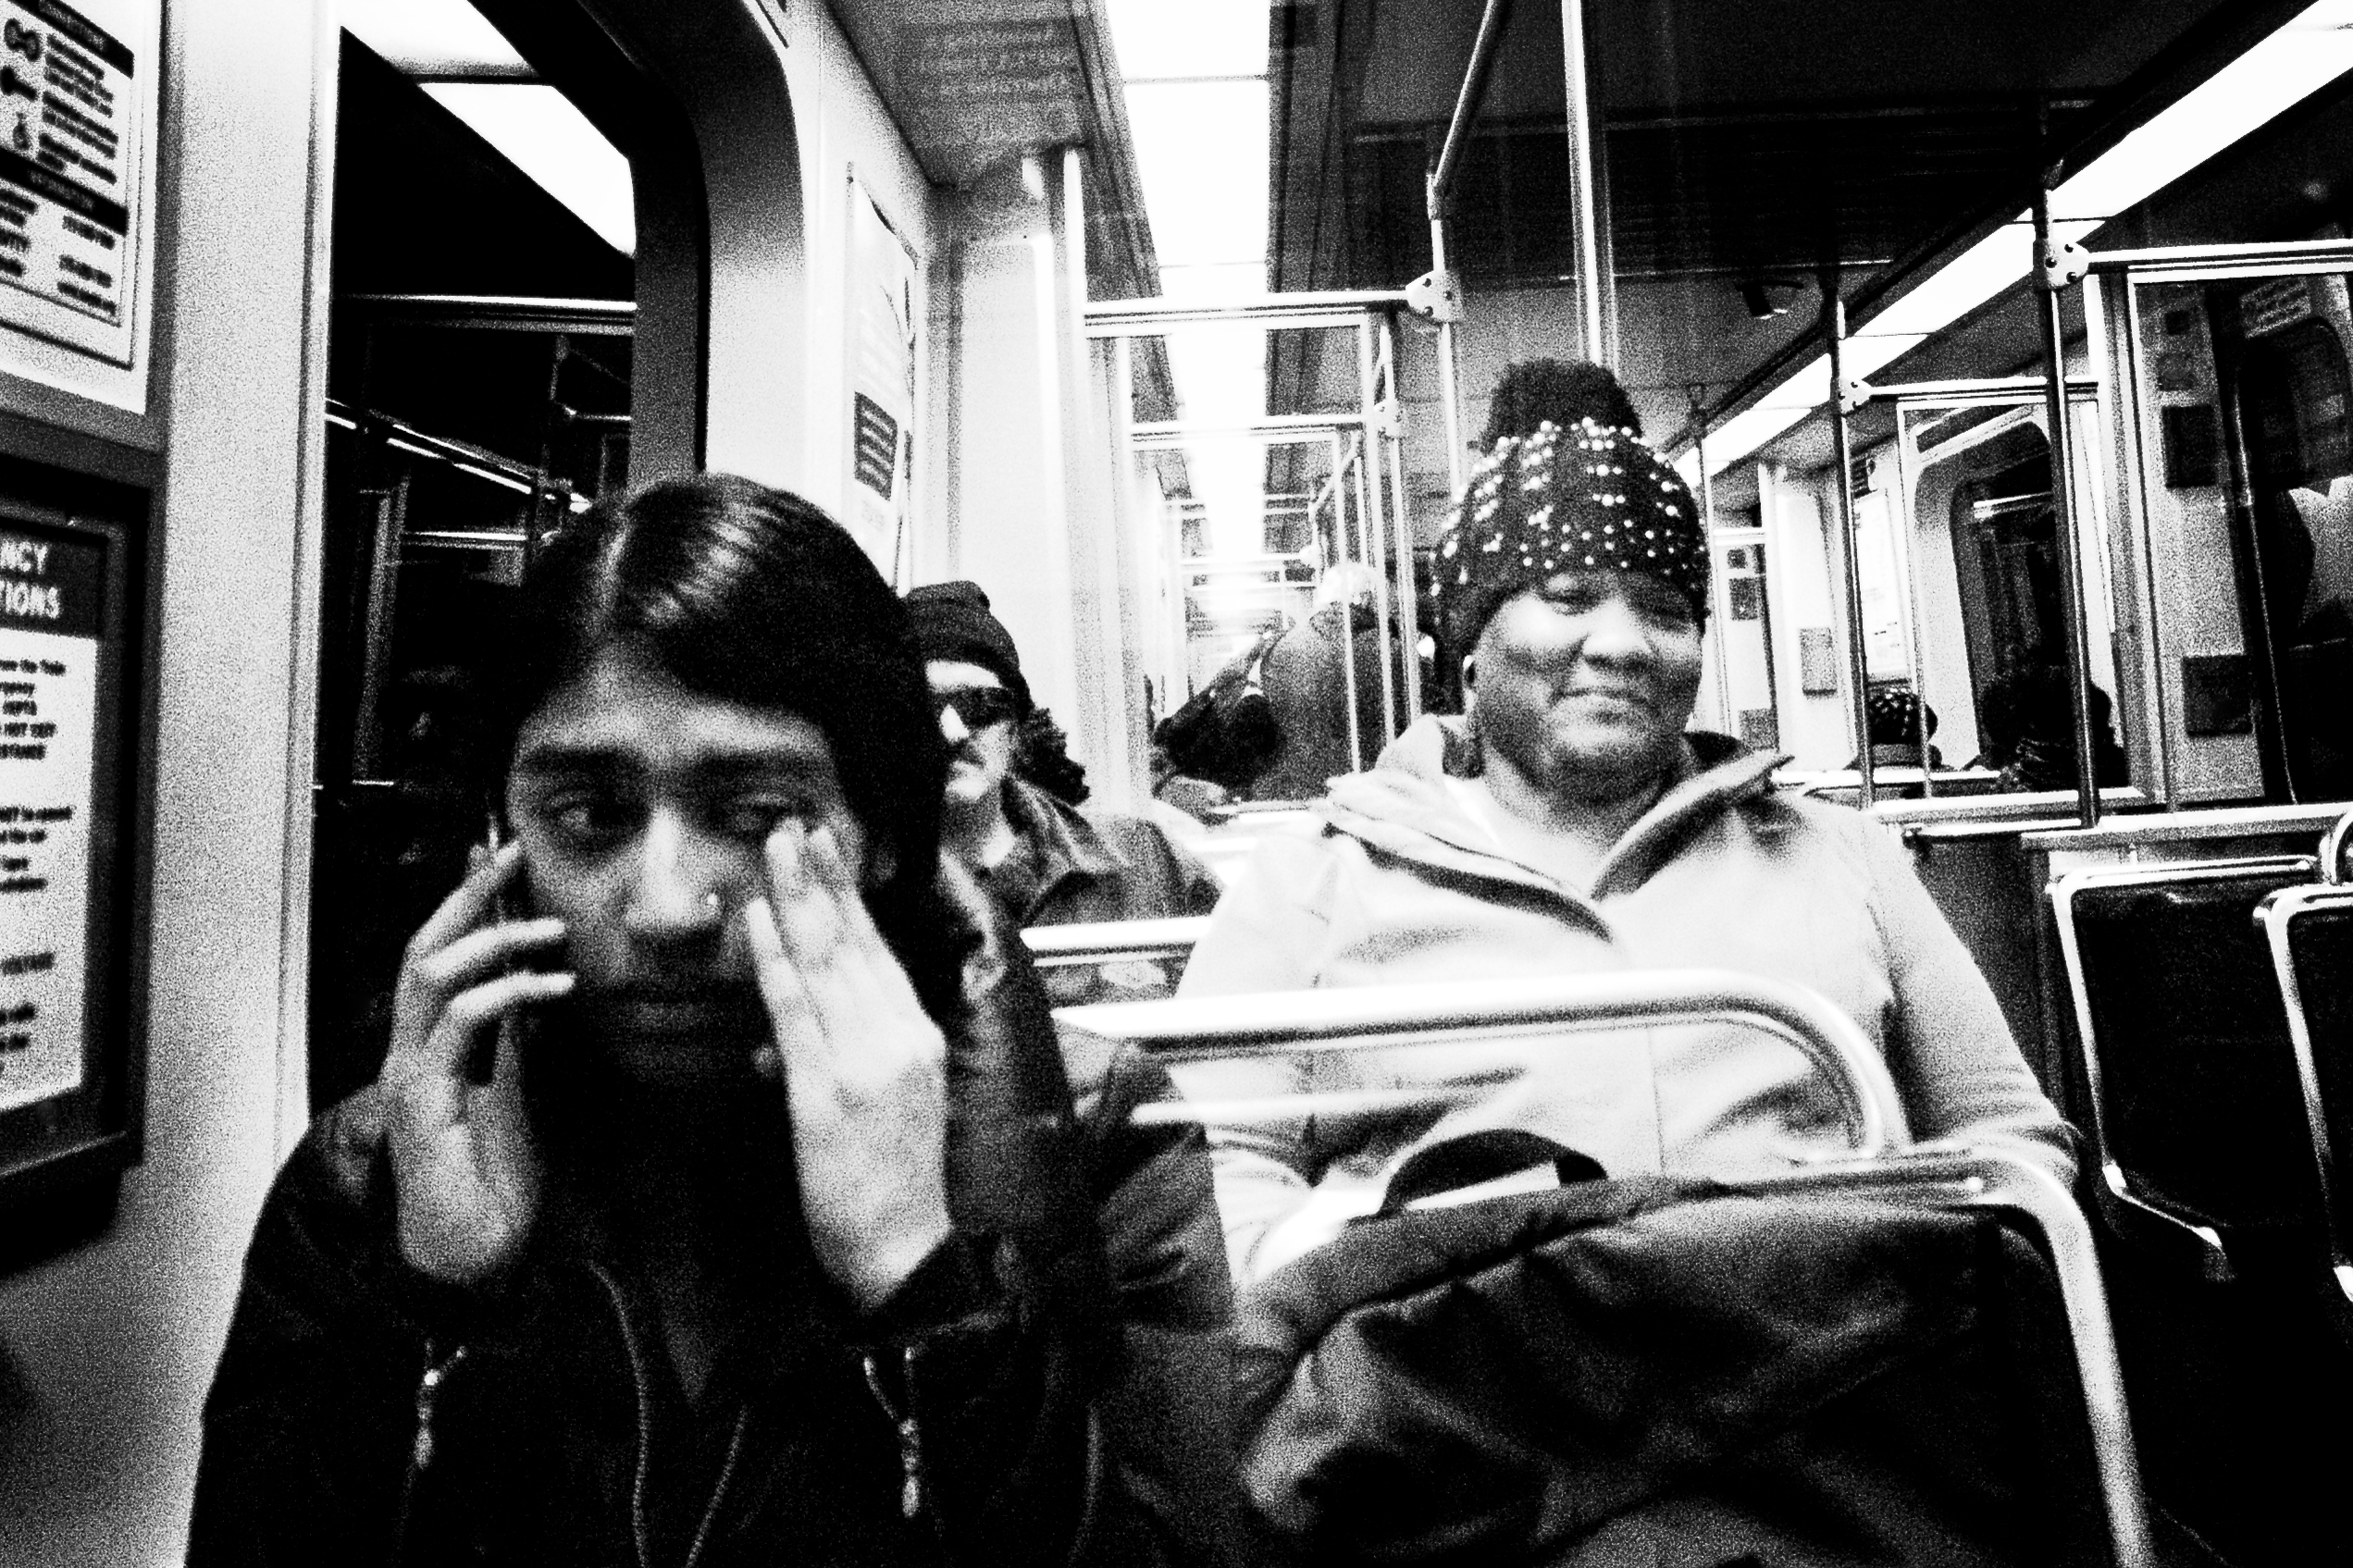 Photograph of two women riding on the subway